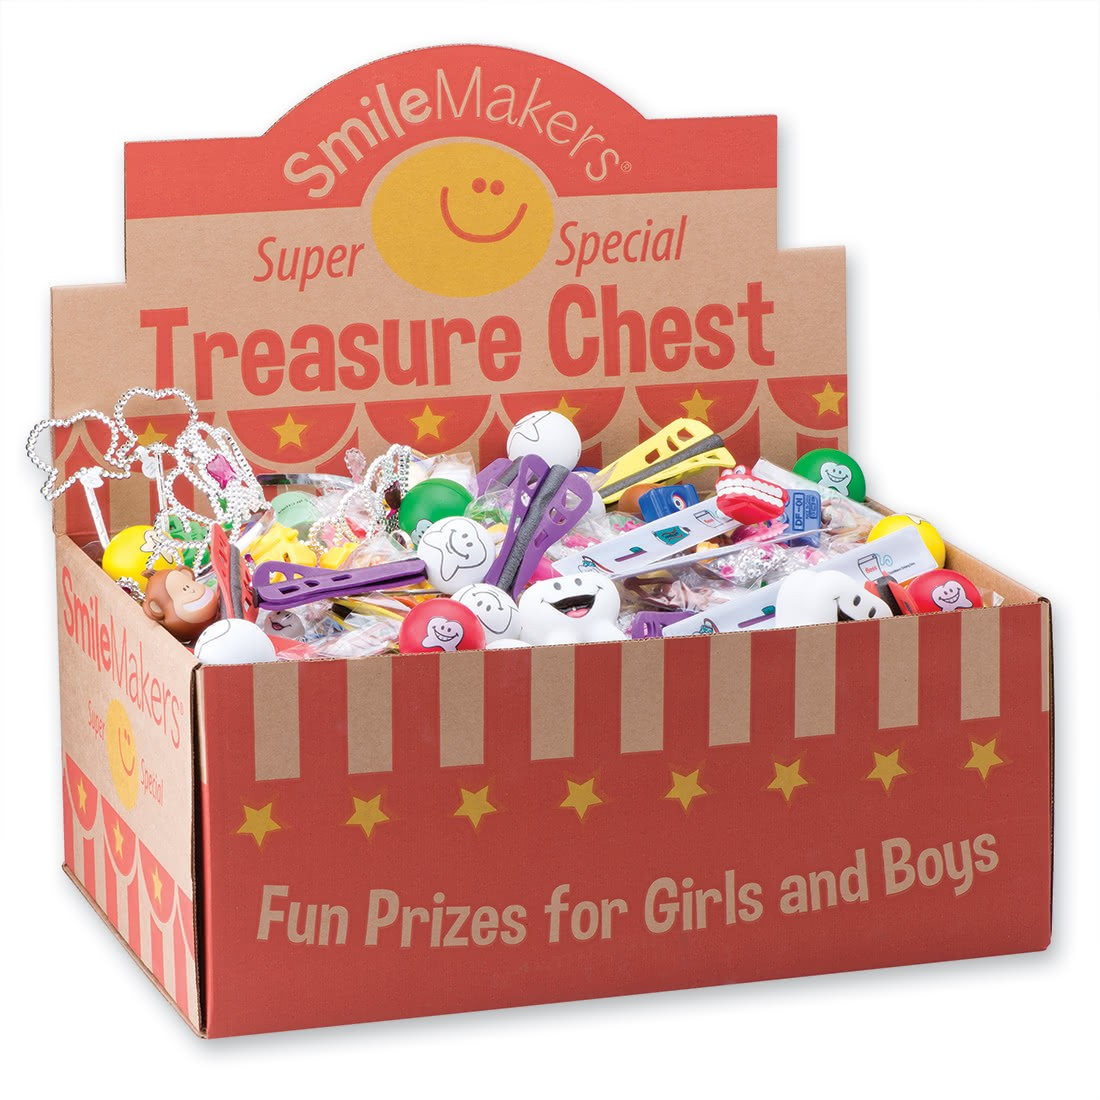 Super Sized Value Dental Toy Treasure Chest [image]